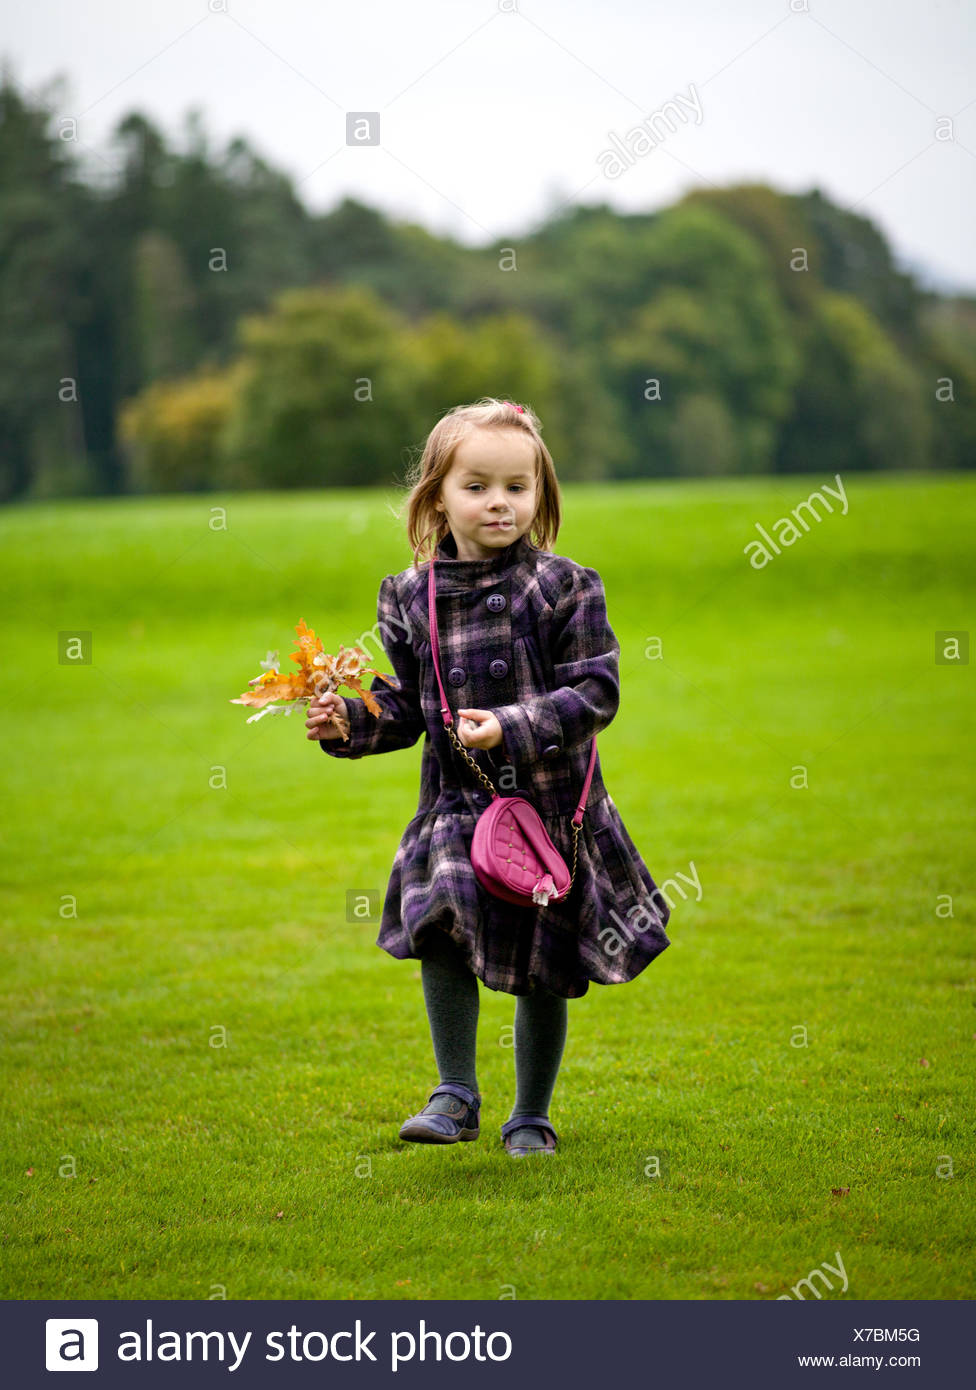 Girl (2-3) holding autumn leaves standing in meadow Stock Photo